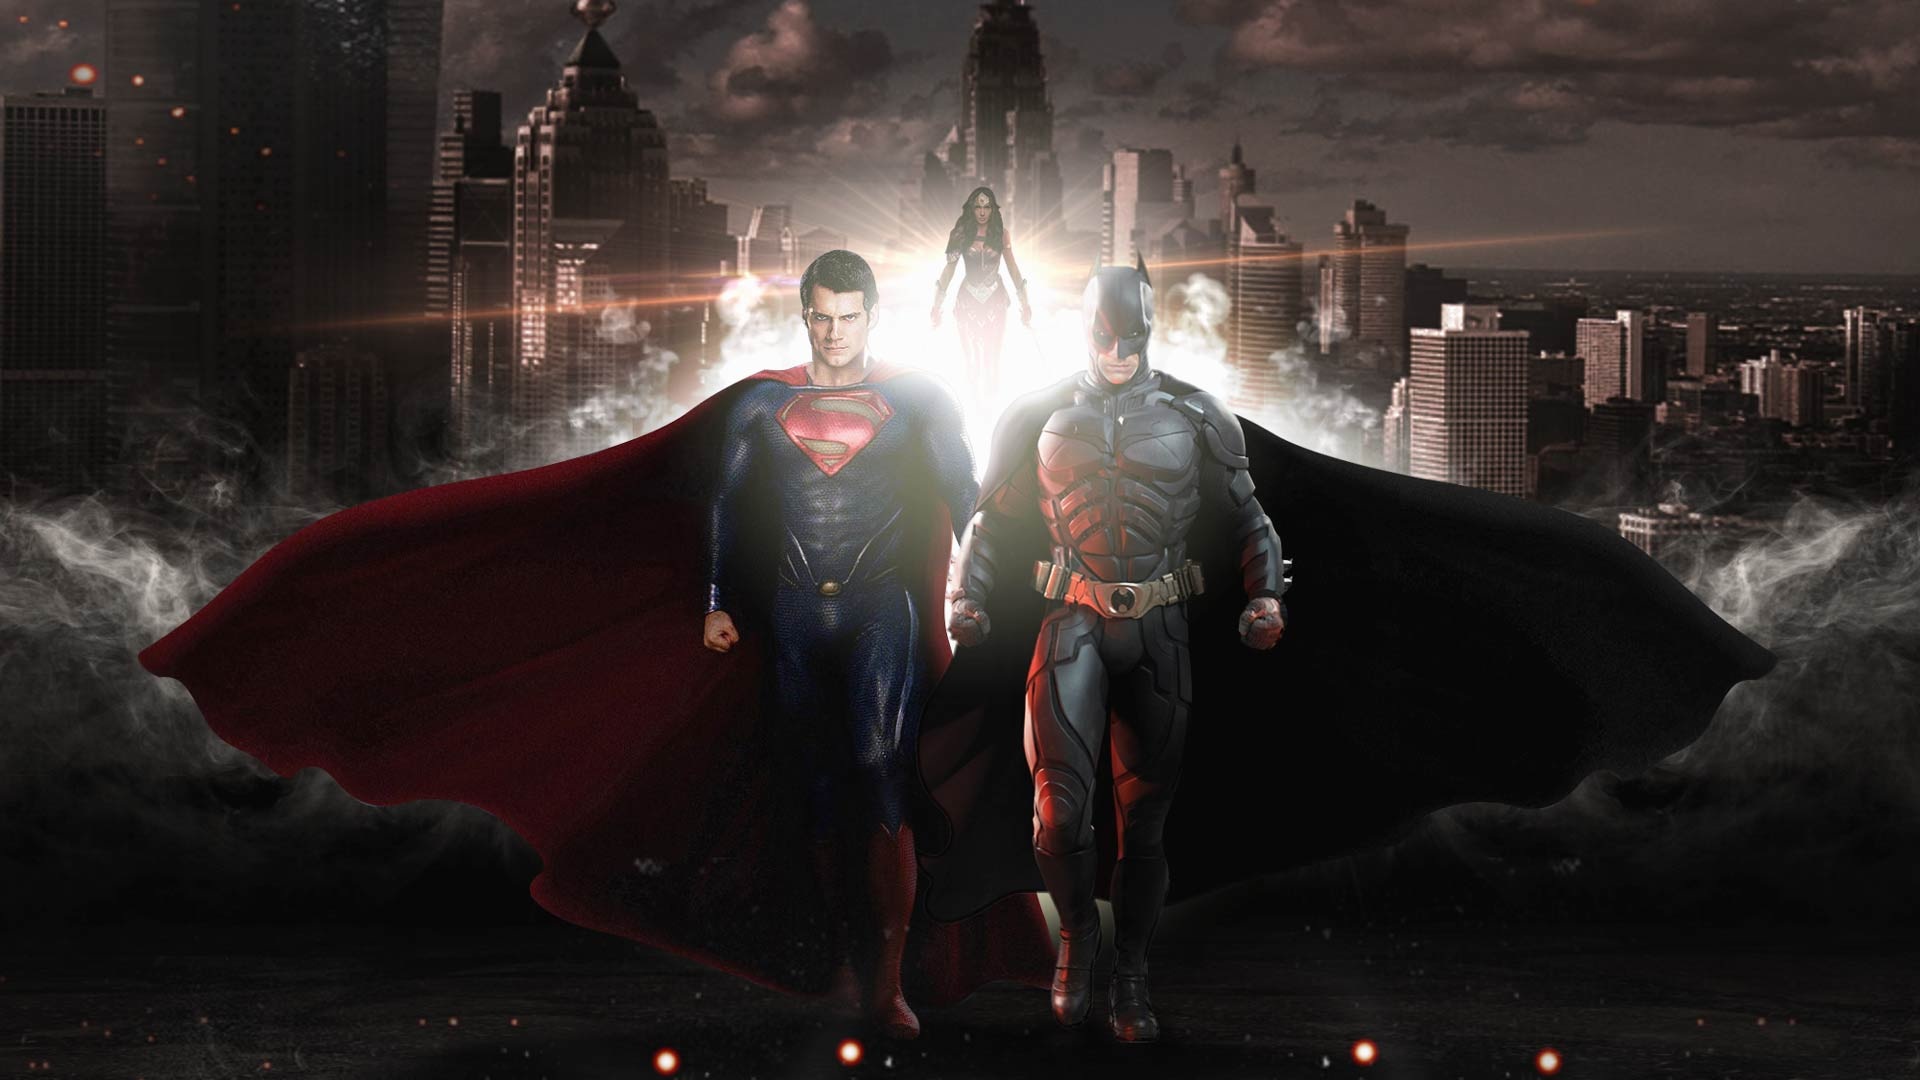 30 Batman Vs Superman Full HD Quality Backgrounds GsFDcY HD 1920x1080